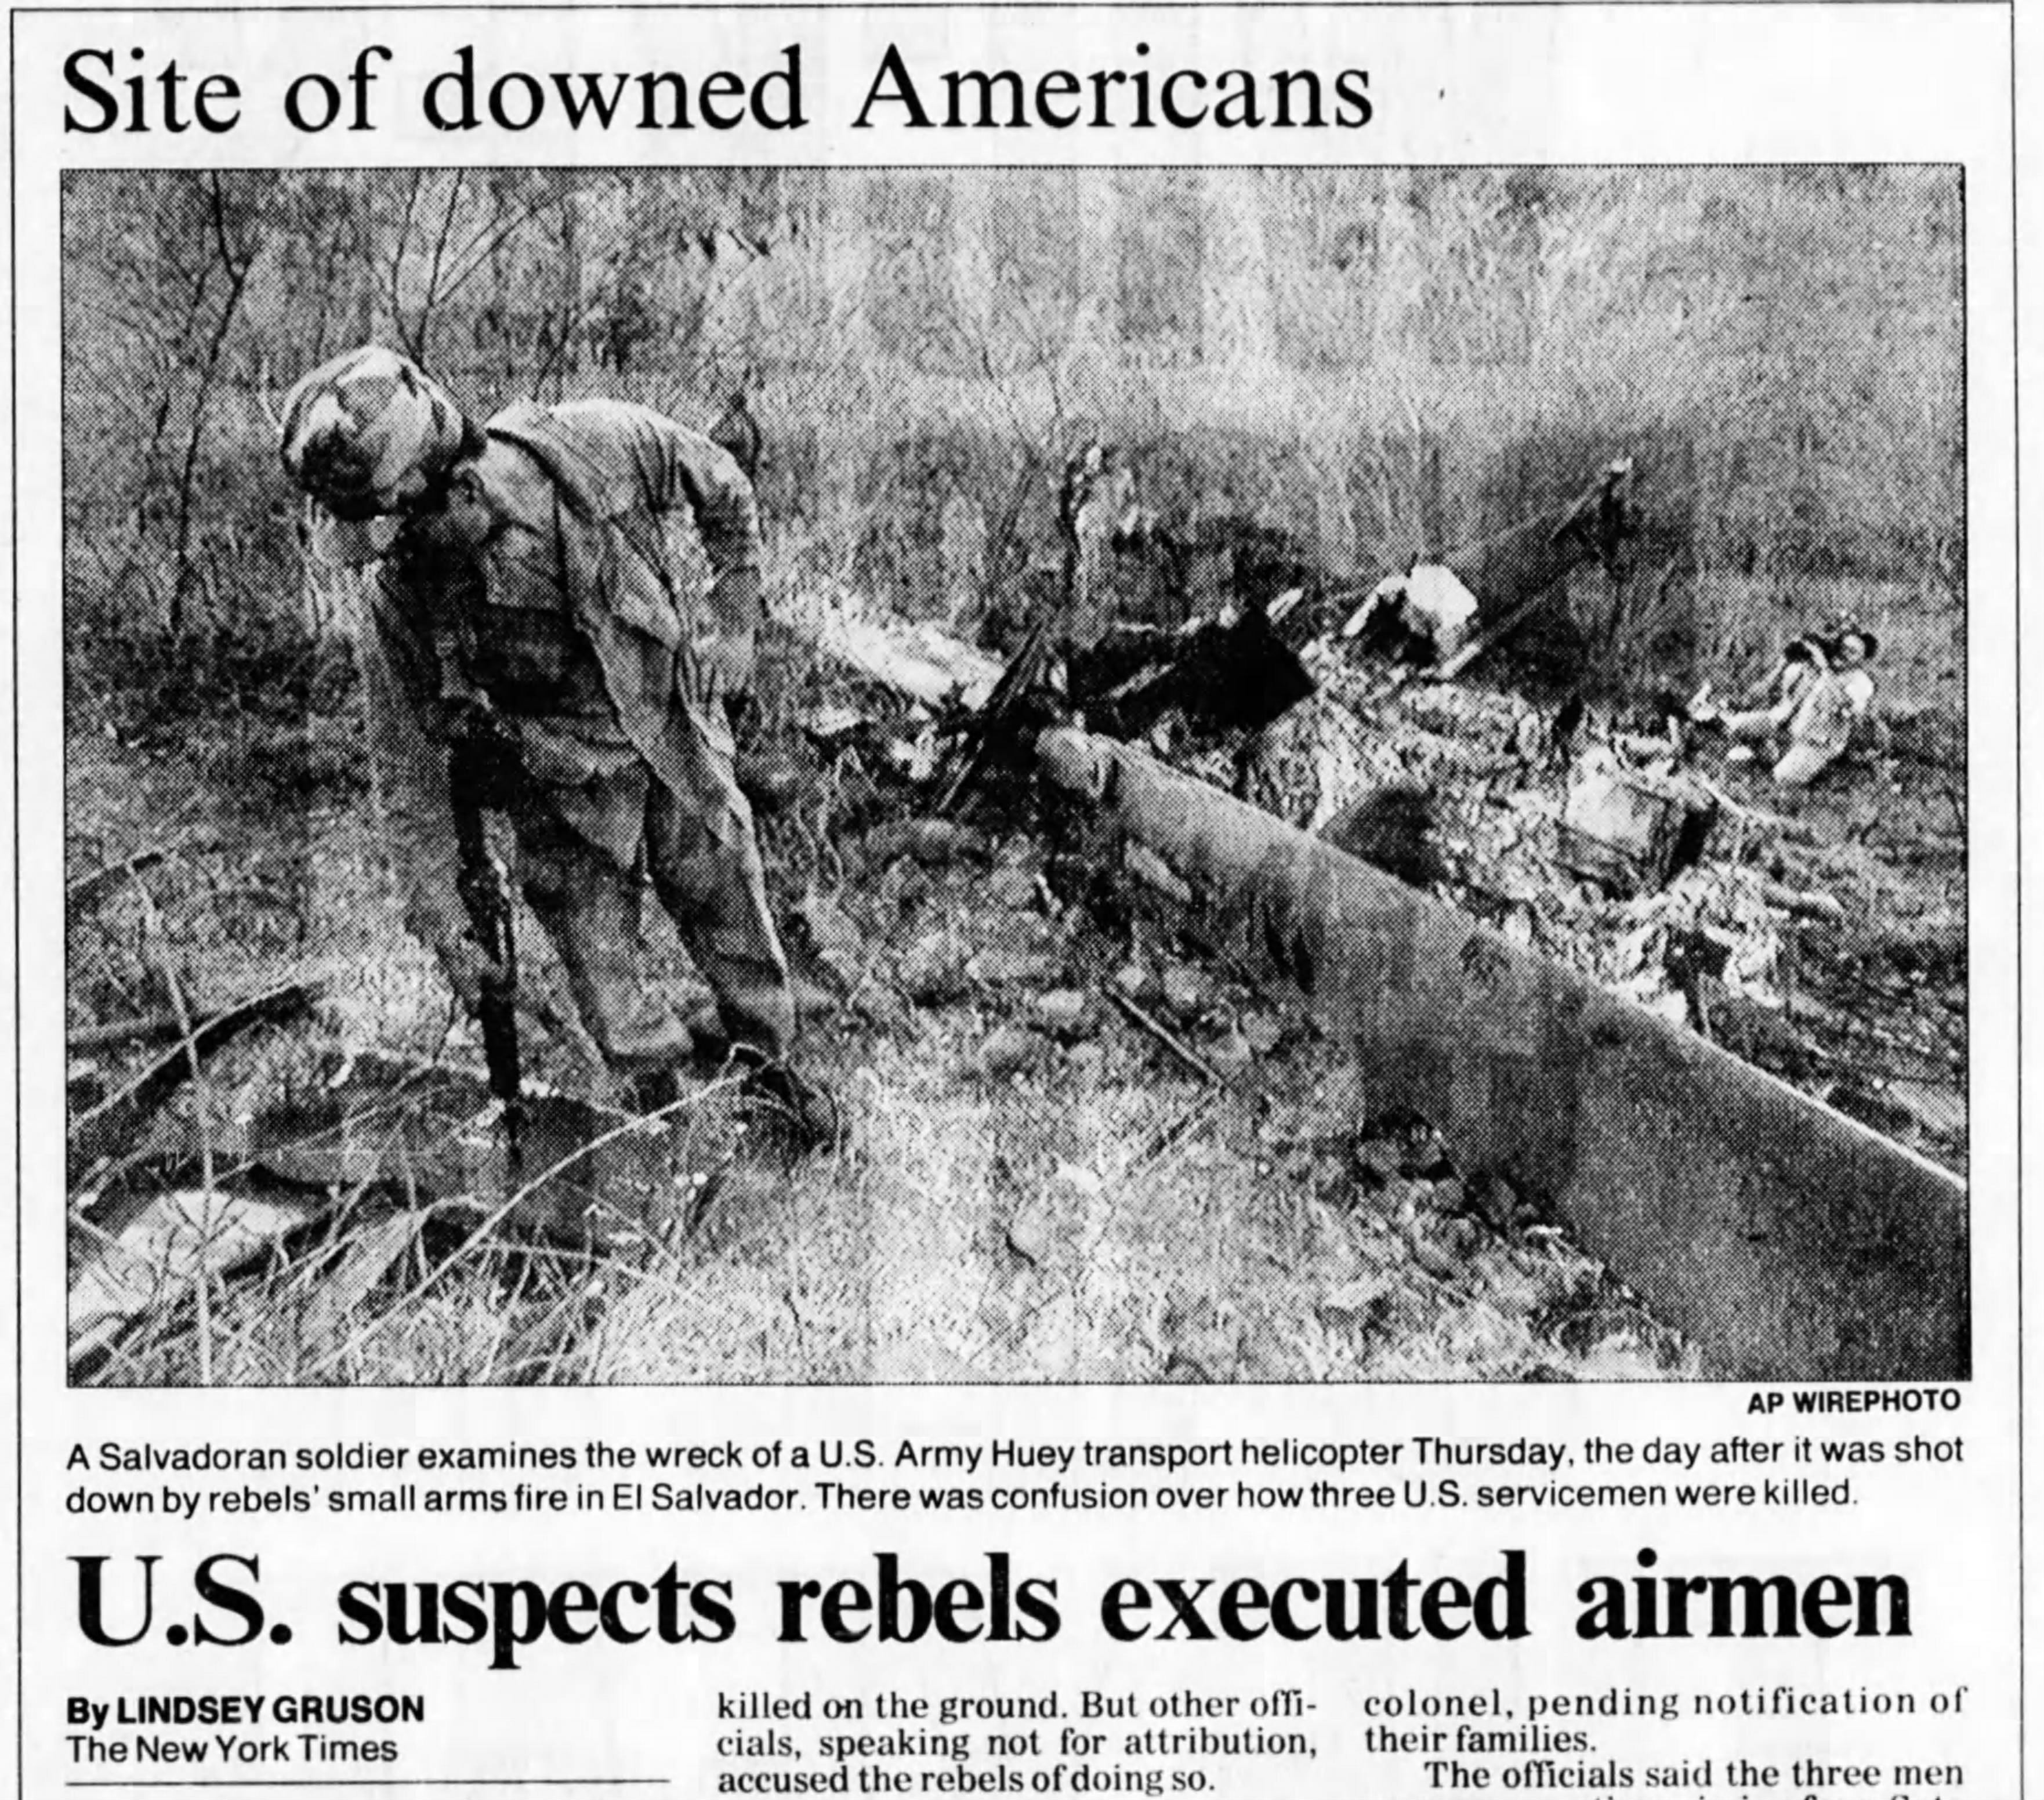 1991 1 4 San Bern County Sun U.S. suspects rebels executed airmen